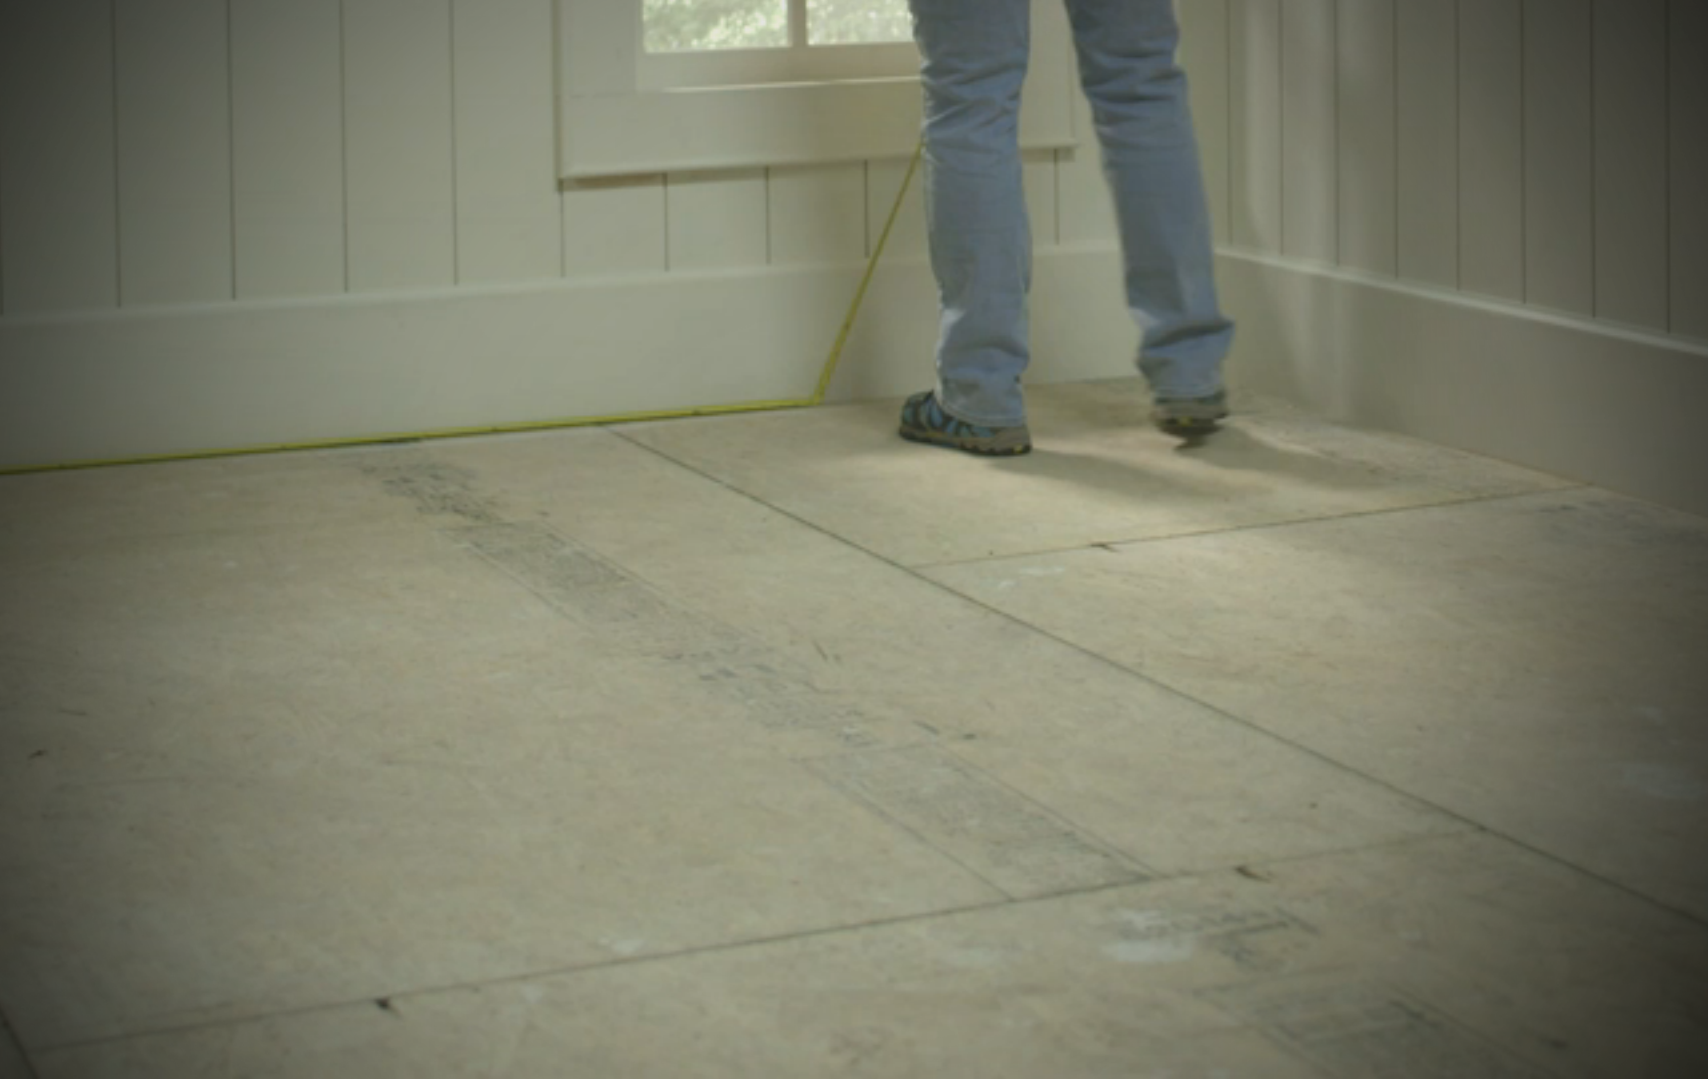 Installing trafficmaster allure in 4 simple steps all about flooring measuring width and length of room dailygadgetfo Image collections